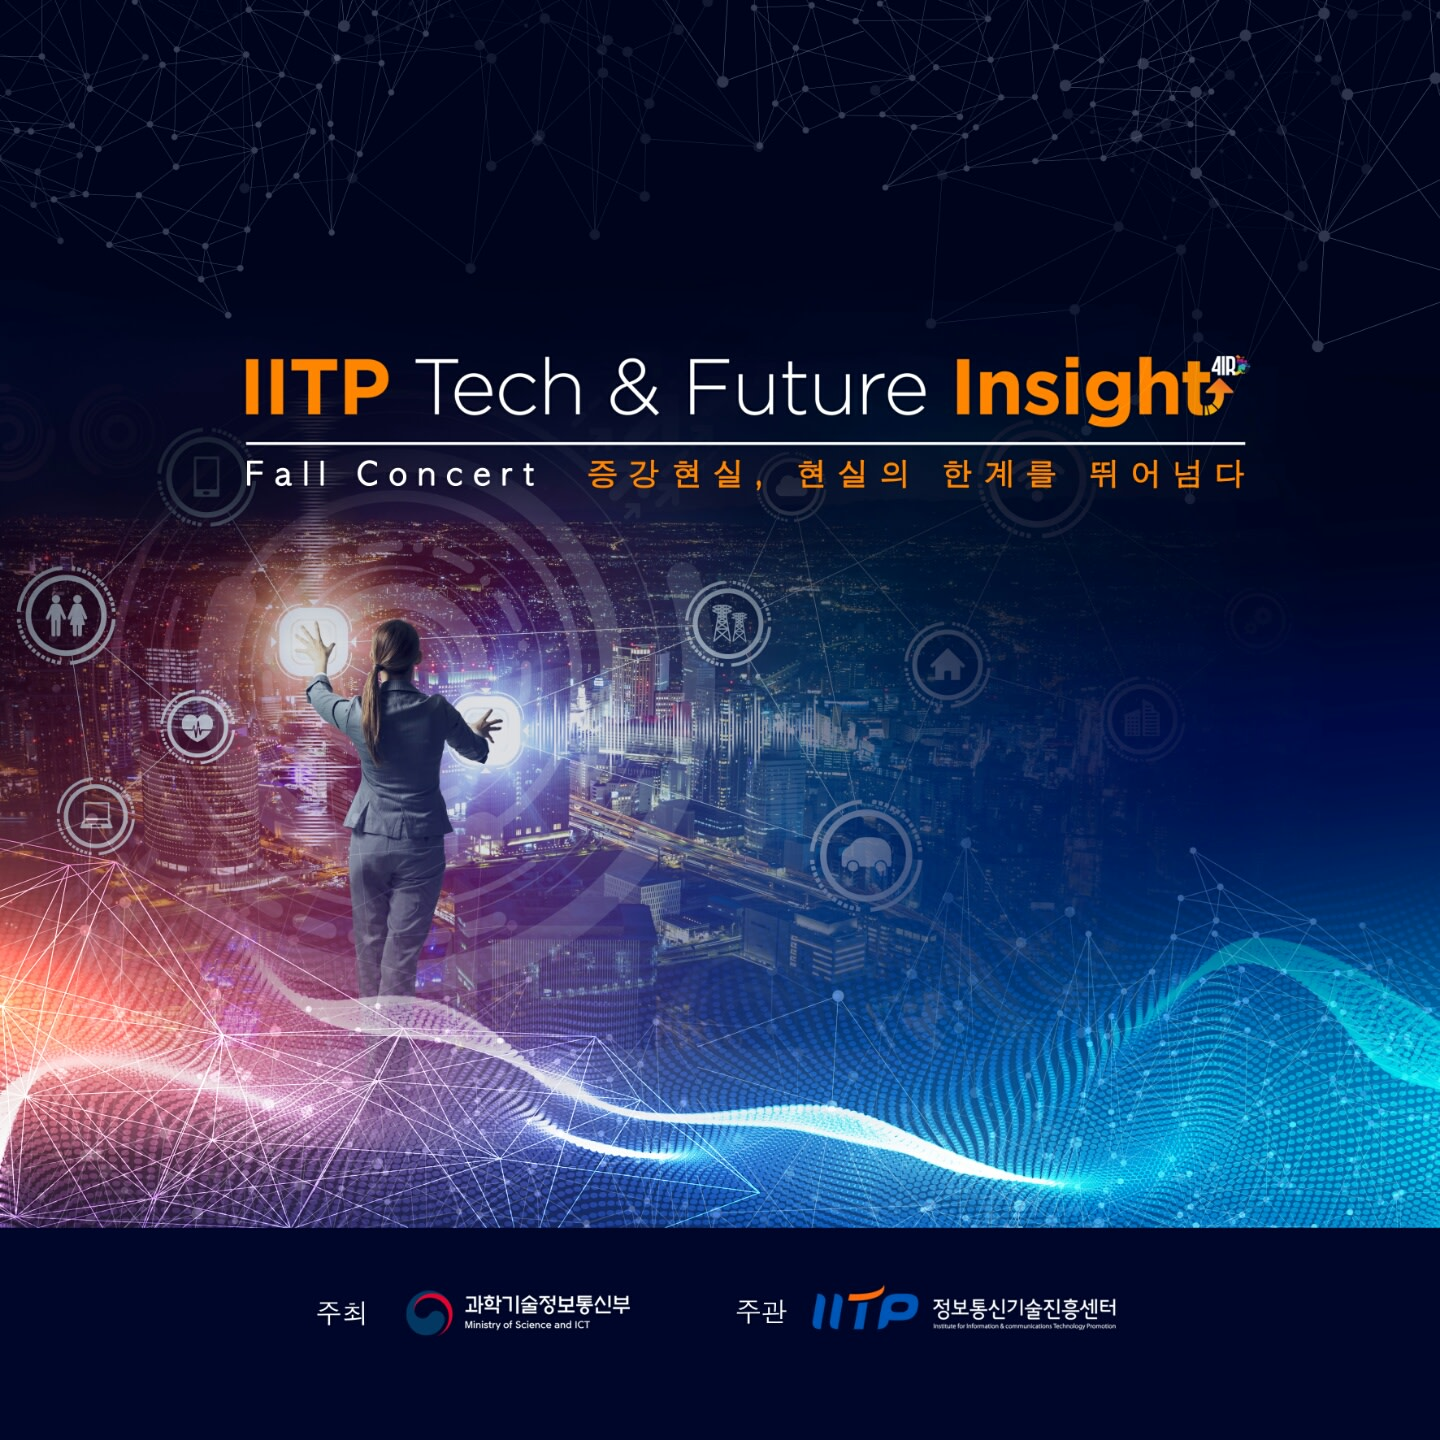 IITP Tech & Future Insight Fall Concert